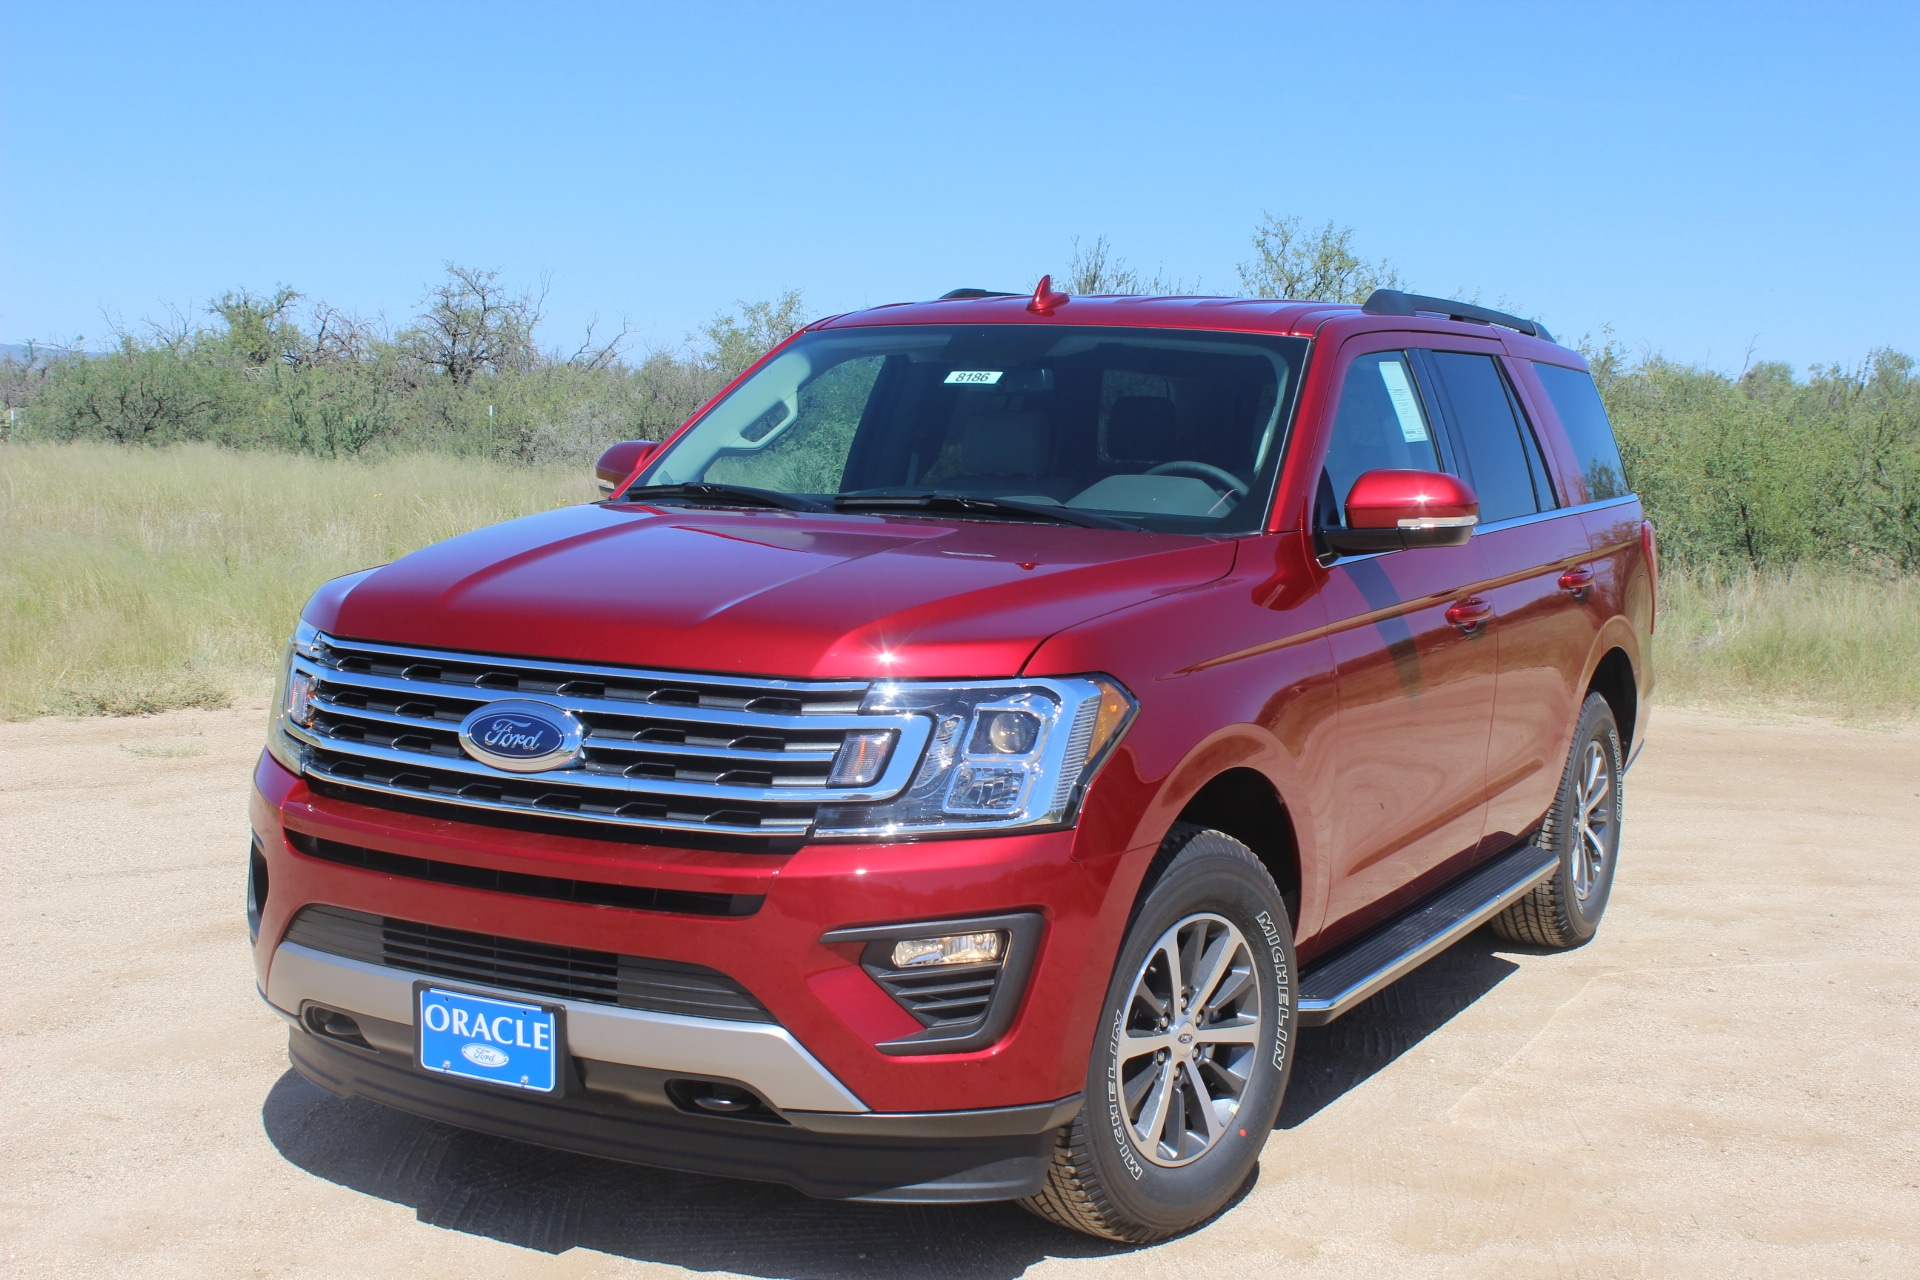 Used 2018 Ford Expedition XLT SUV for sale in Oracle, AZ